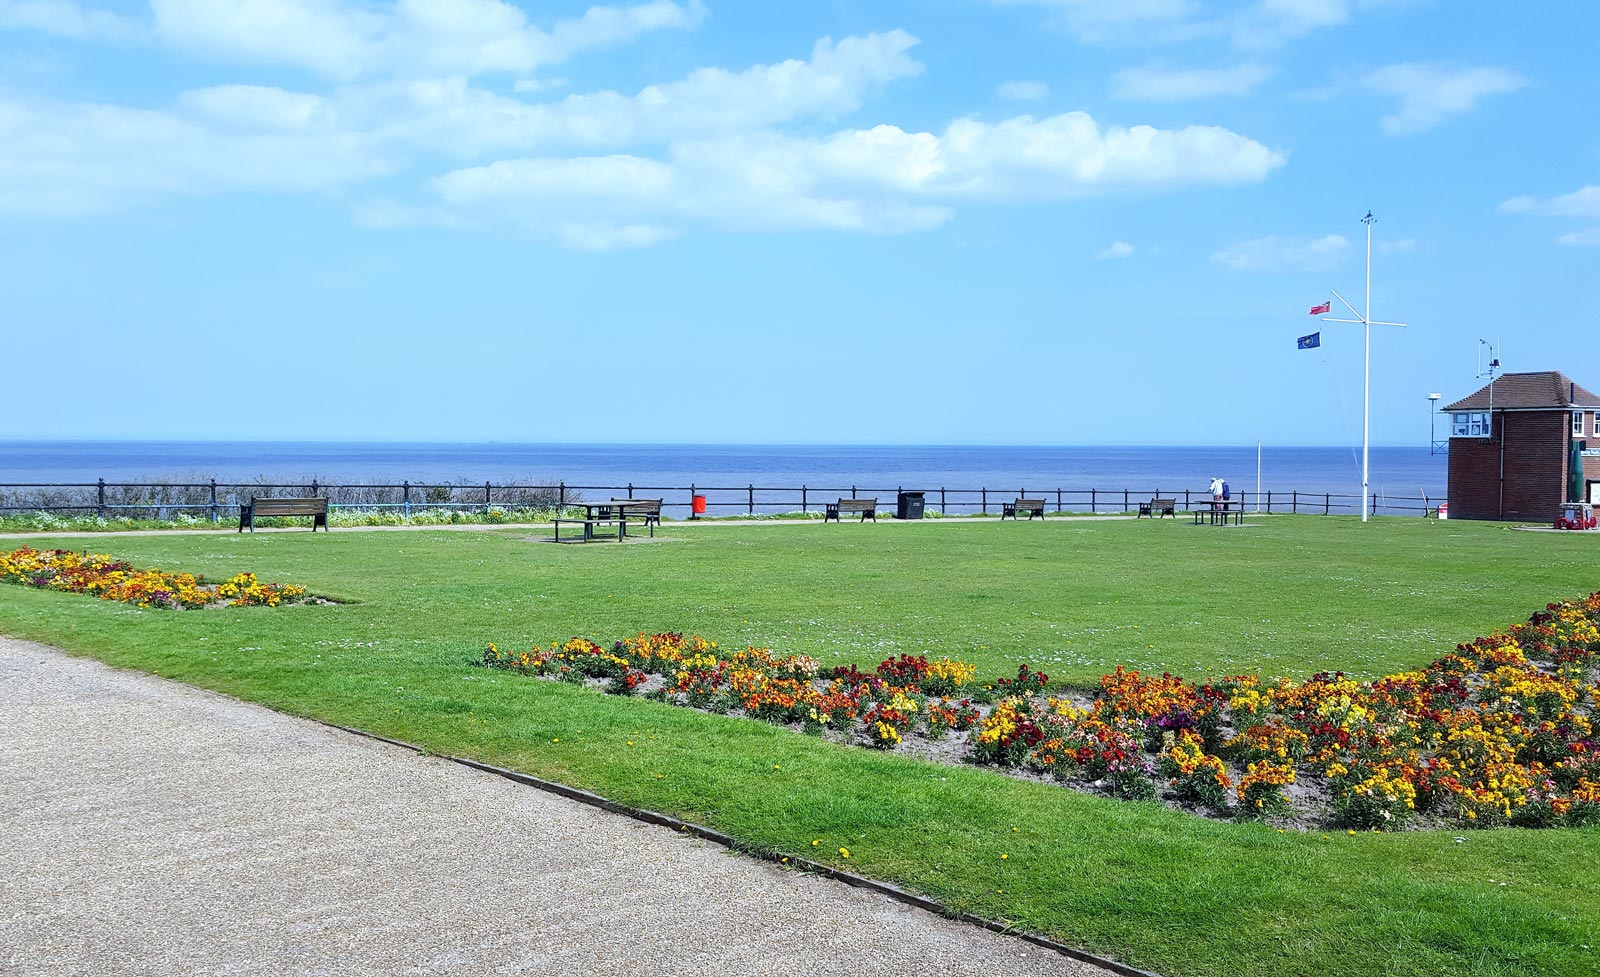 Mundesley Cliff Top Gardens